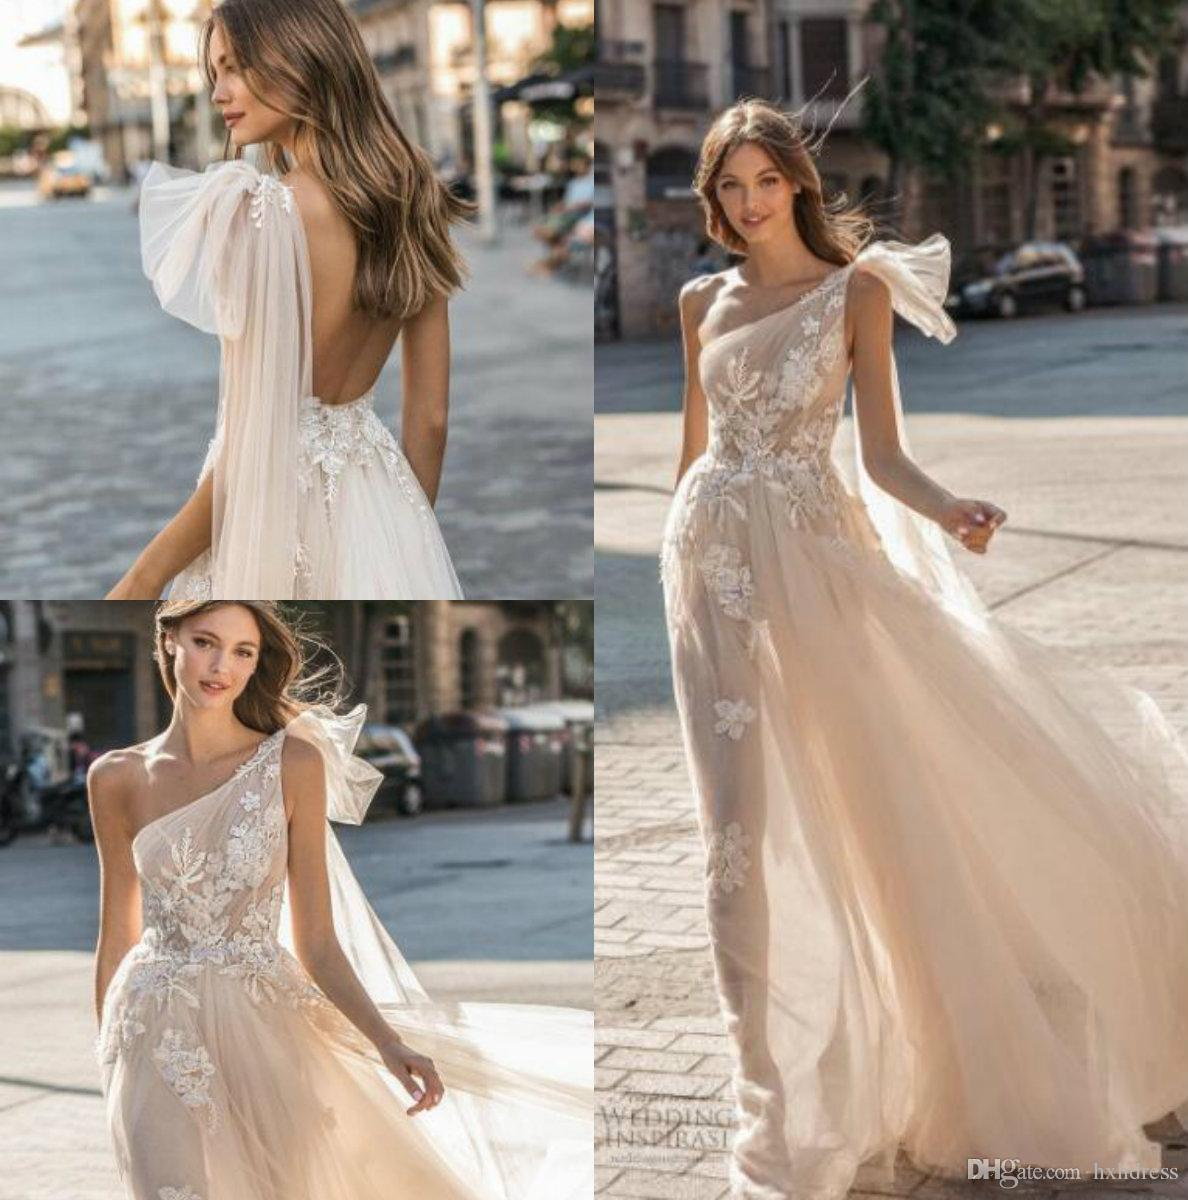 2019 New Muse by Berta Wedding Dresses One Shoulder Backless Bridal Gown Appliqued A Line Beach Boho Simple See Through Wedding Dress